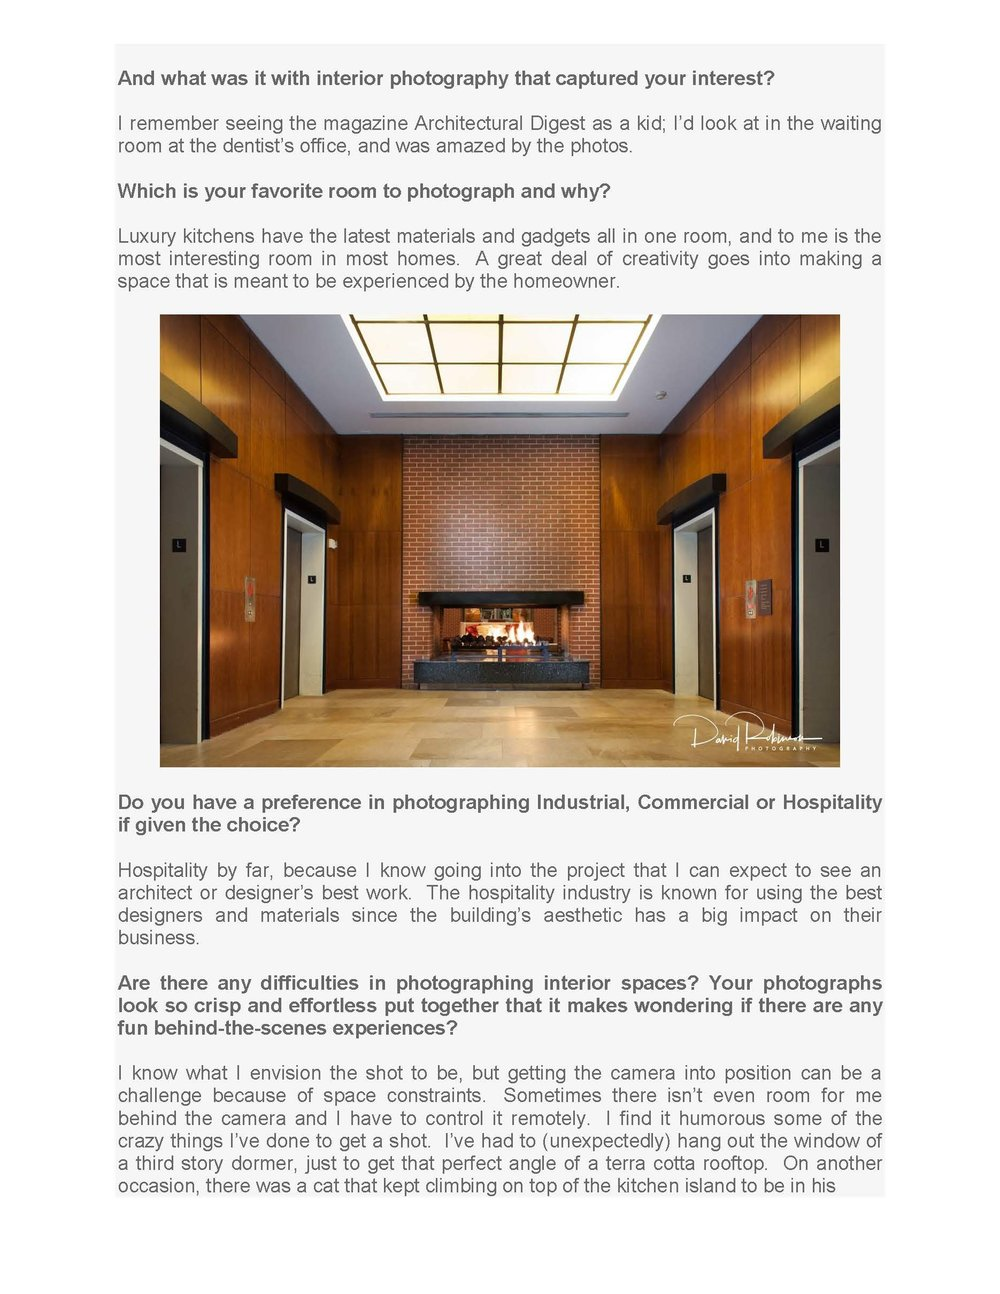 Architectural and Interior Design Photographer (1)_Page_2.jpg